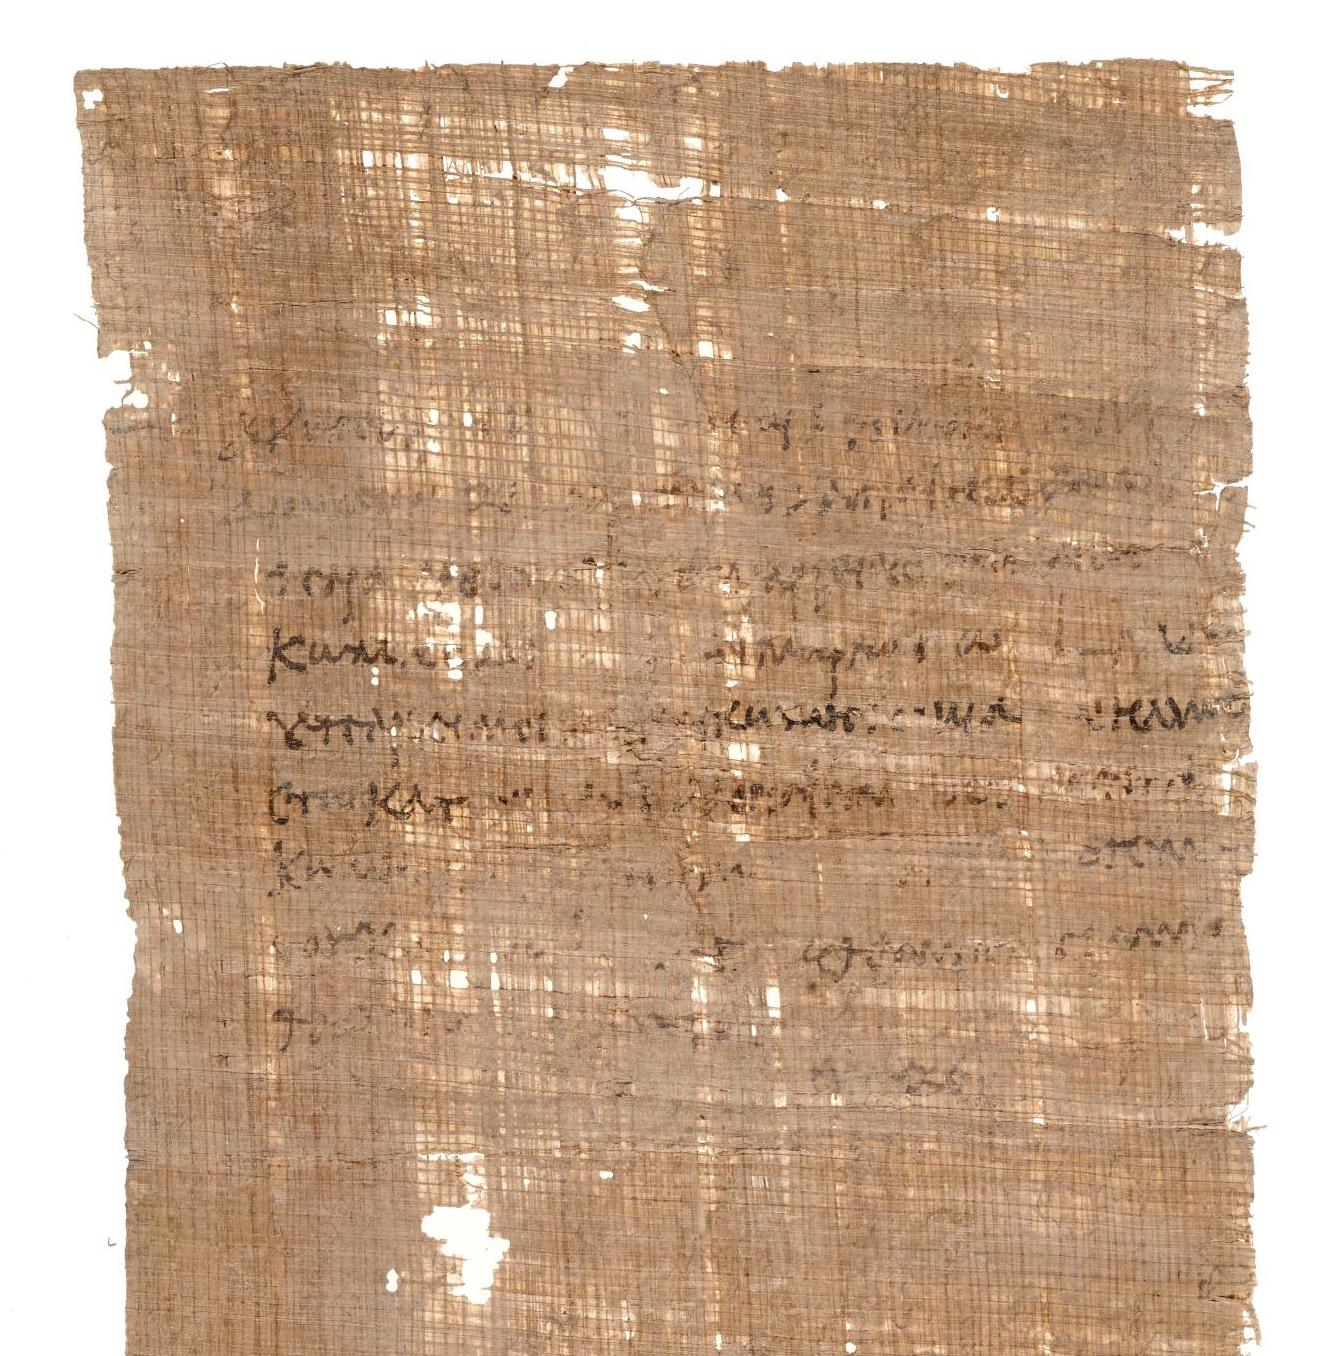 Rectangular piece of light brown material, threadbare with with some holes, with lines of handwriting on it in variably faded ink.